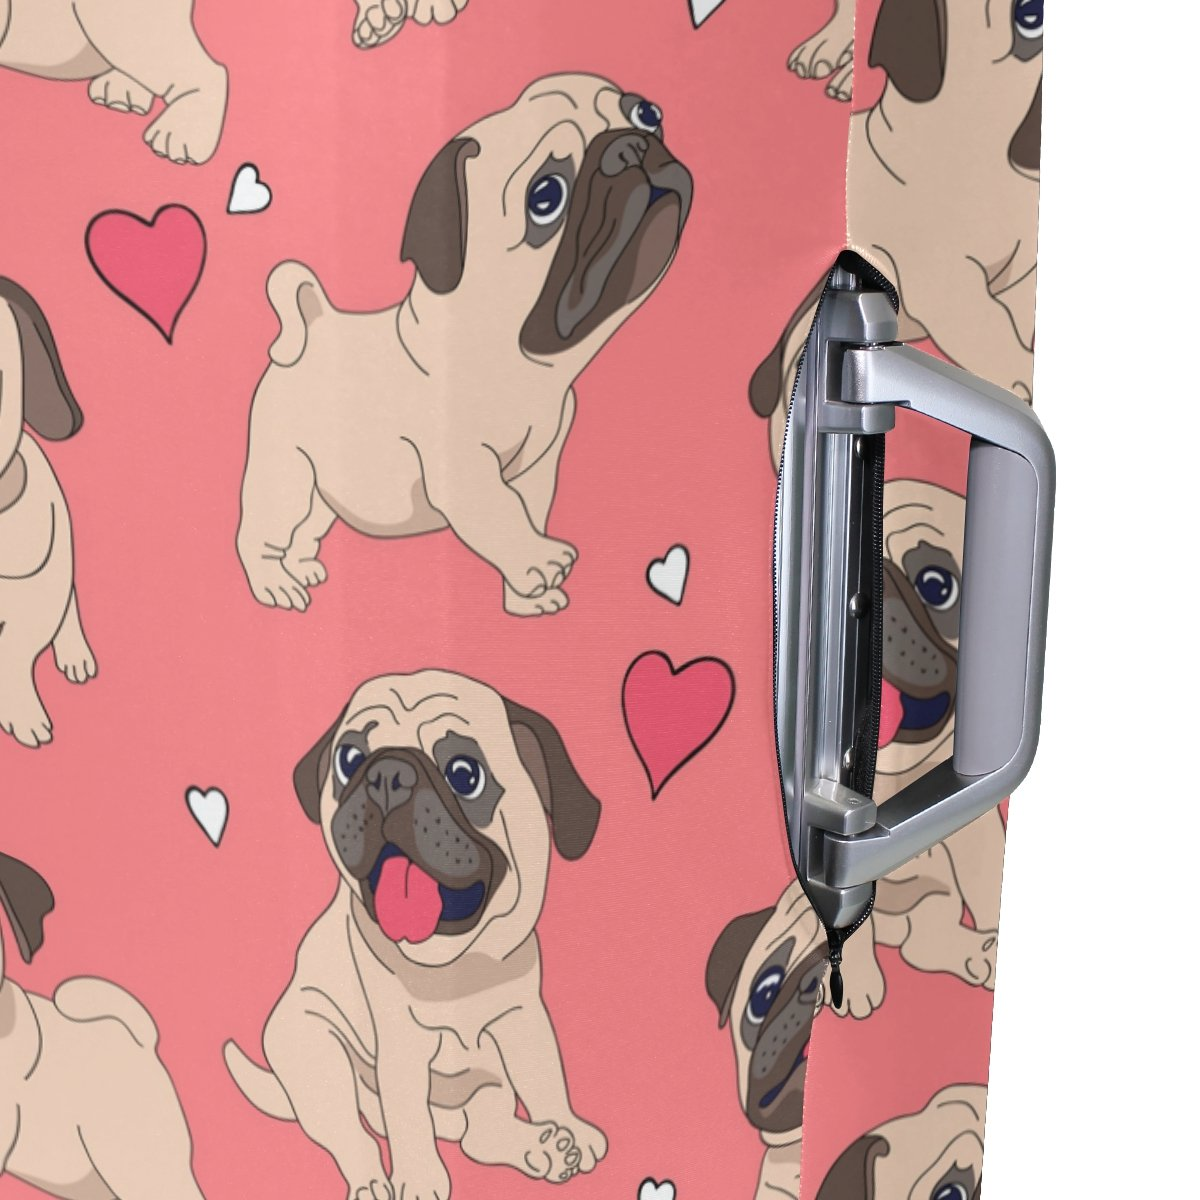 Cute Dog Puppy Love Heart Suitcase Luggage Cover Protector for Travel Kids Men Women by ALAZA (Image #4)